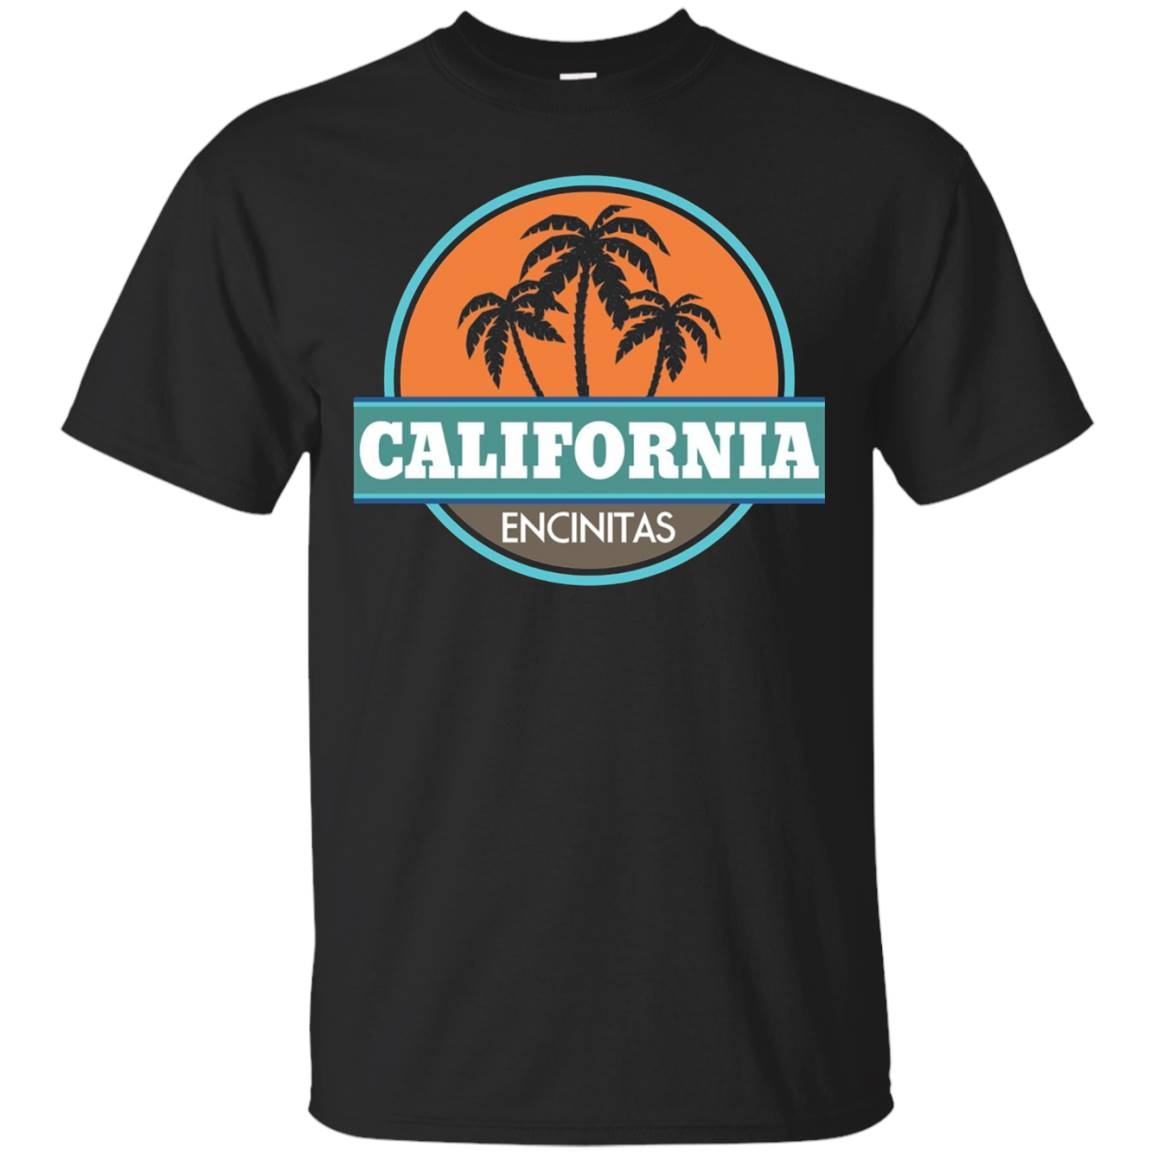 Encinitas California Vintage Sunset T-shirt Travel Gift – T-Shirt